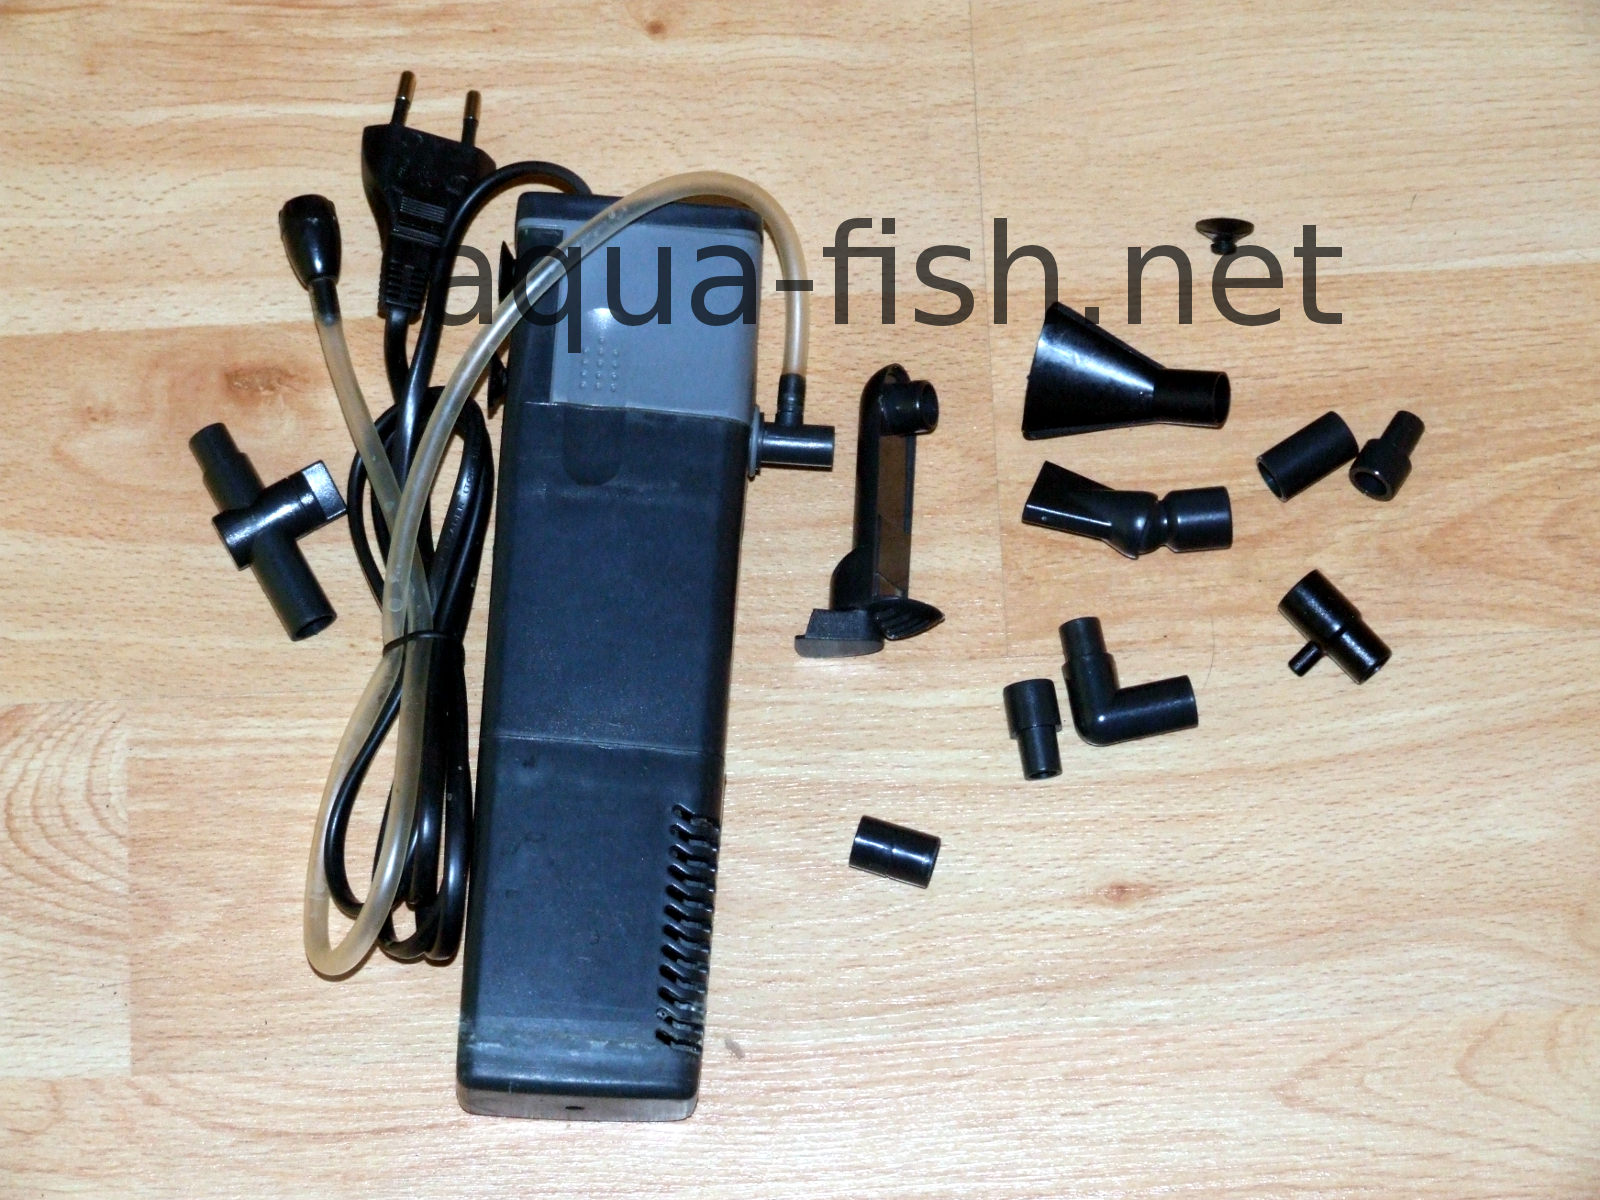 Aquarium fish tank external filter ef 1 1000l h - Internal Aquarium Filter Resized Image 1